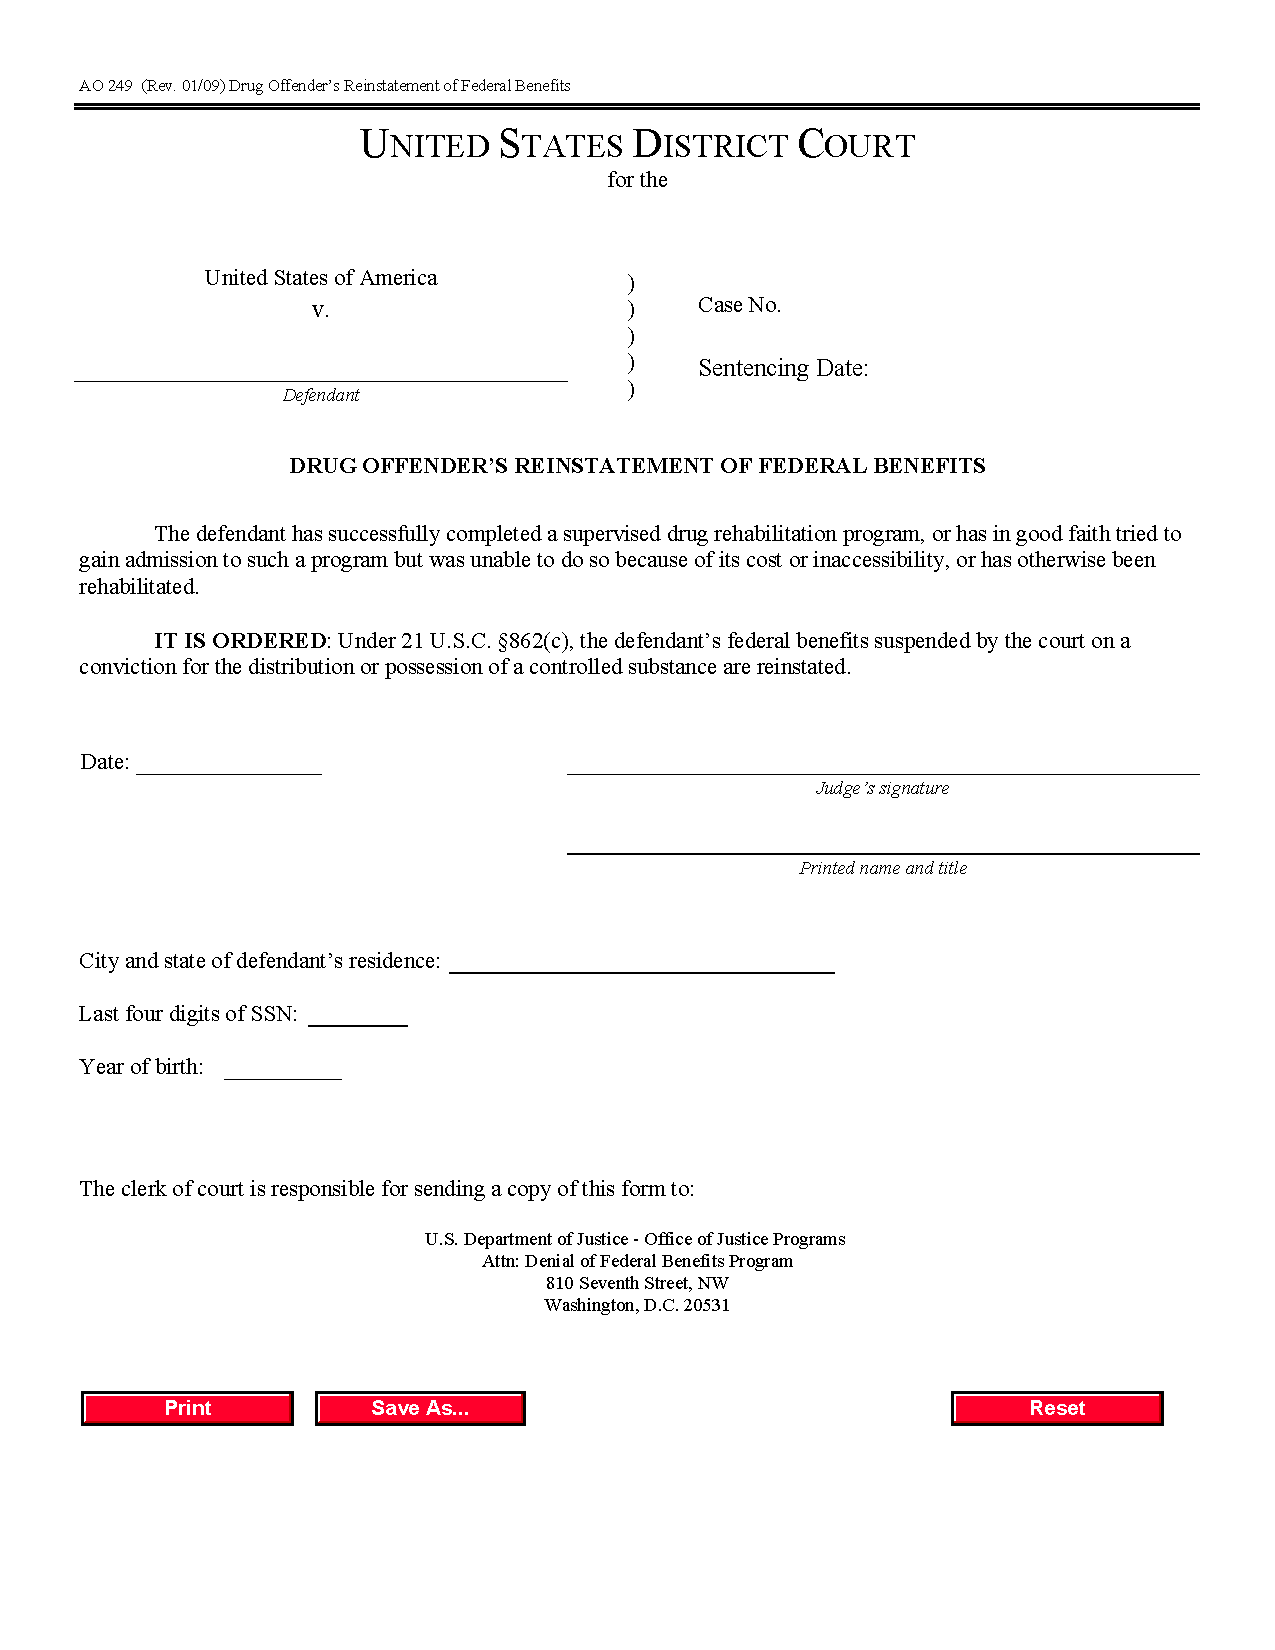 Form Ao 249 Drug Offender'S Reinstatement Of Federal Benefits With Regard To Court Date By Defendant Name